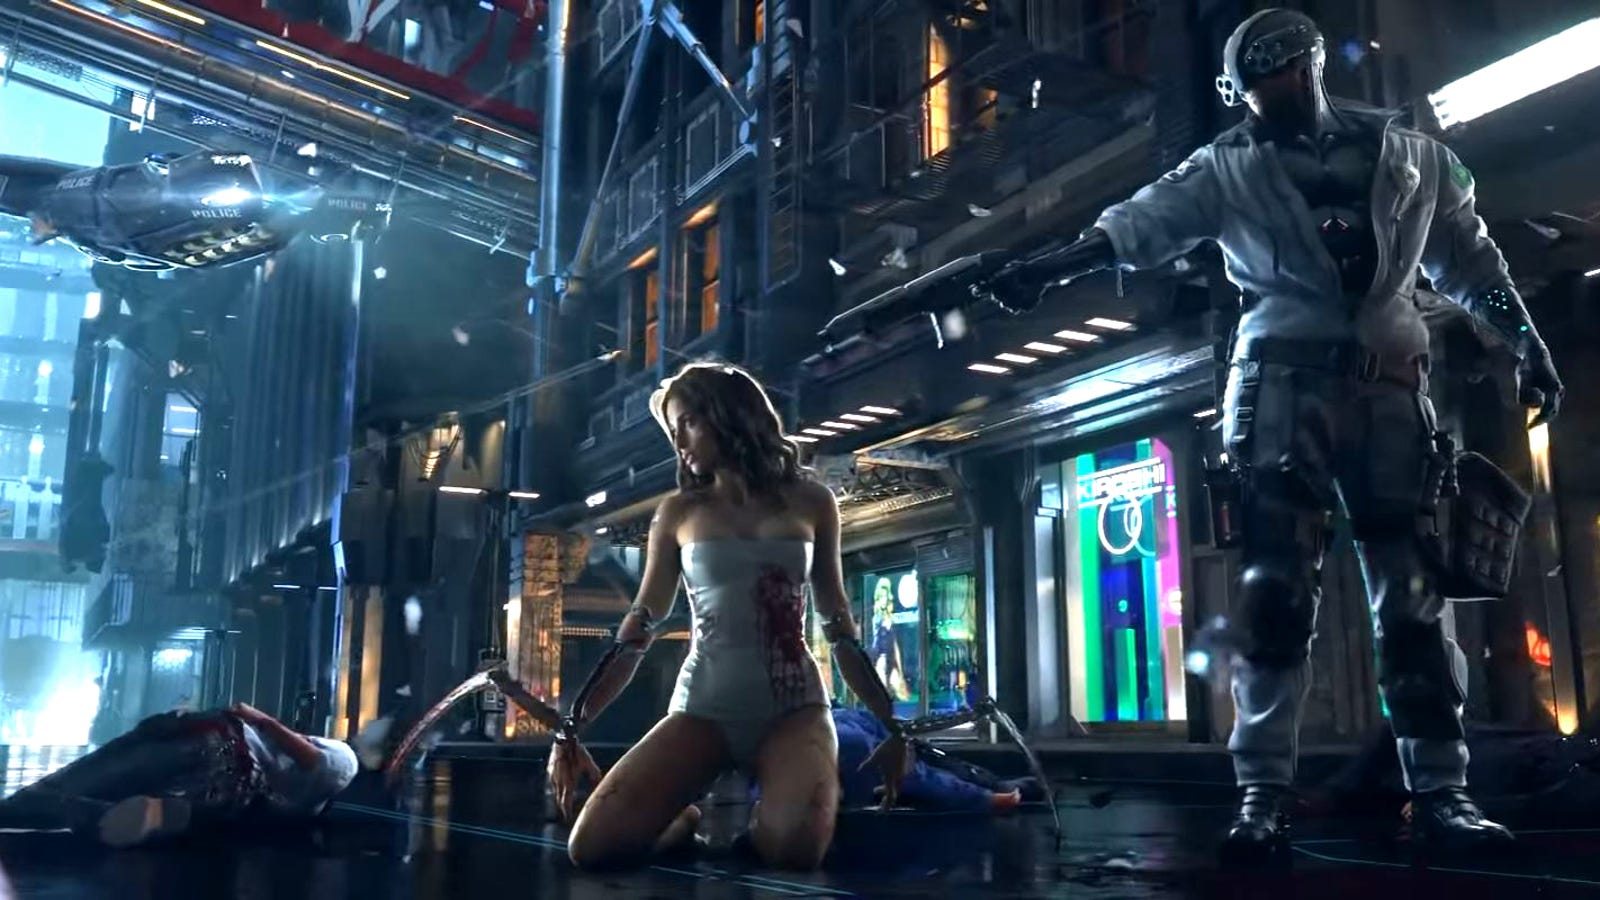 Video Game Maker Sparks Outrage With Trademark of 'Cyberpunk'